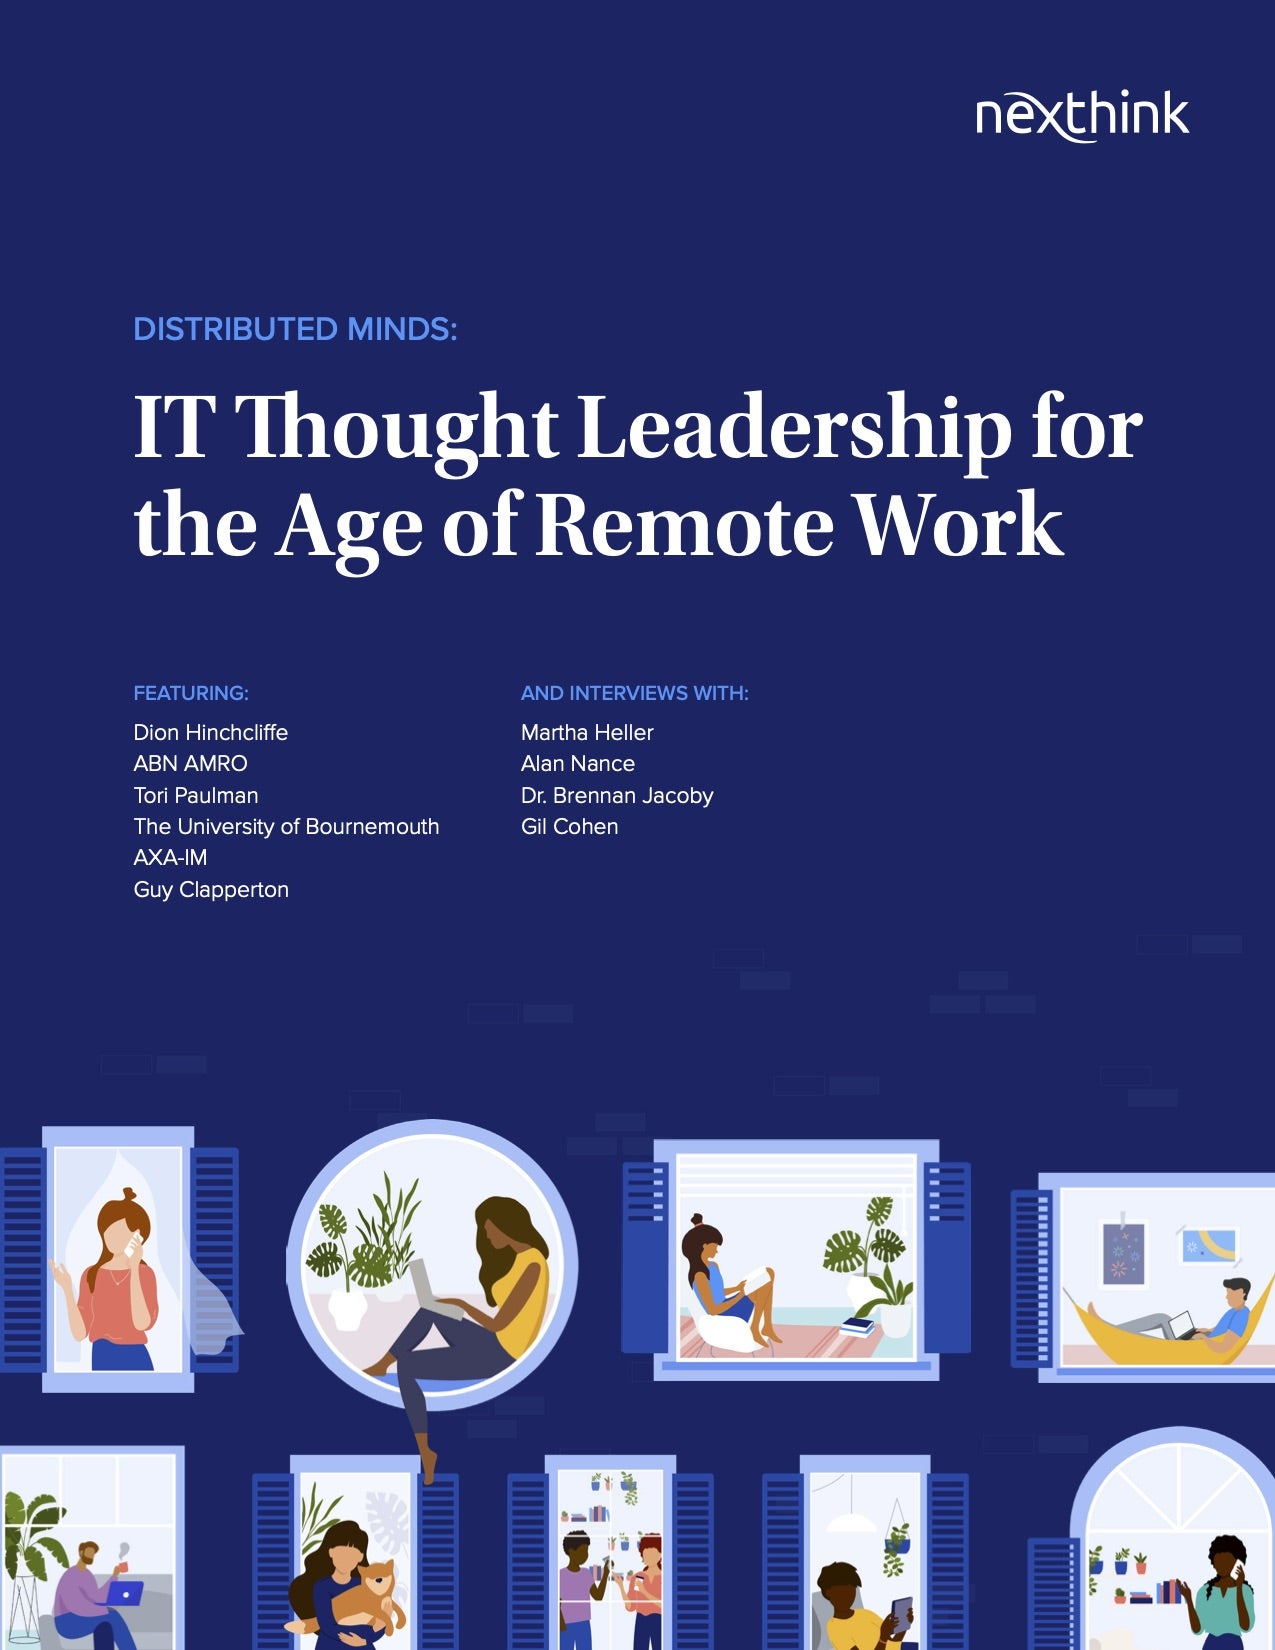 IT Thought Leadership for the Age of Remote Work